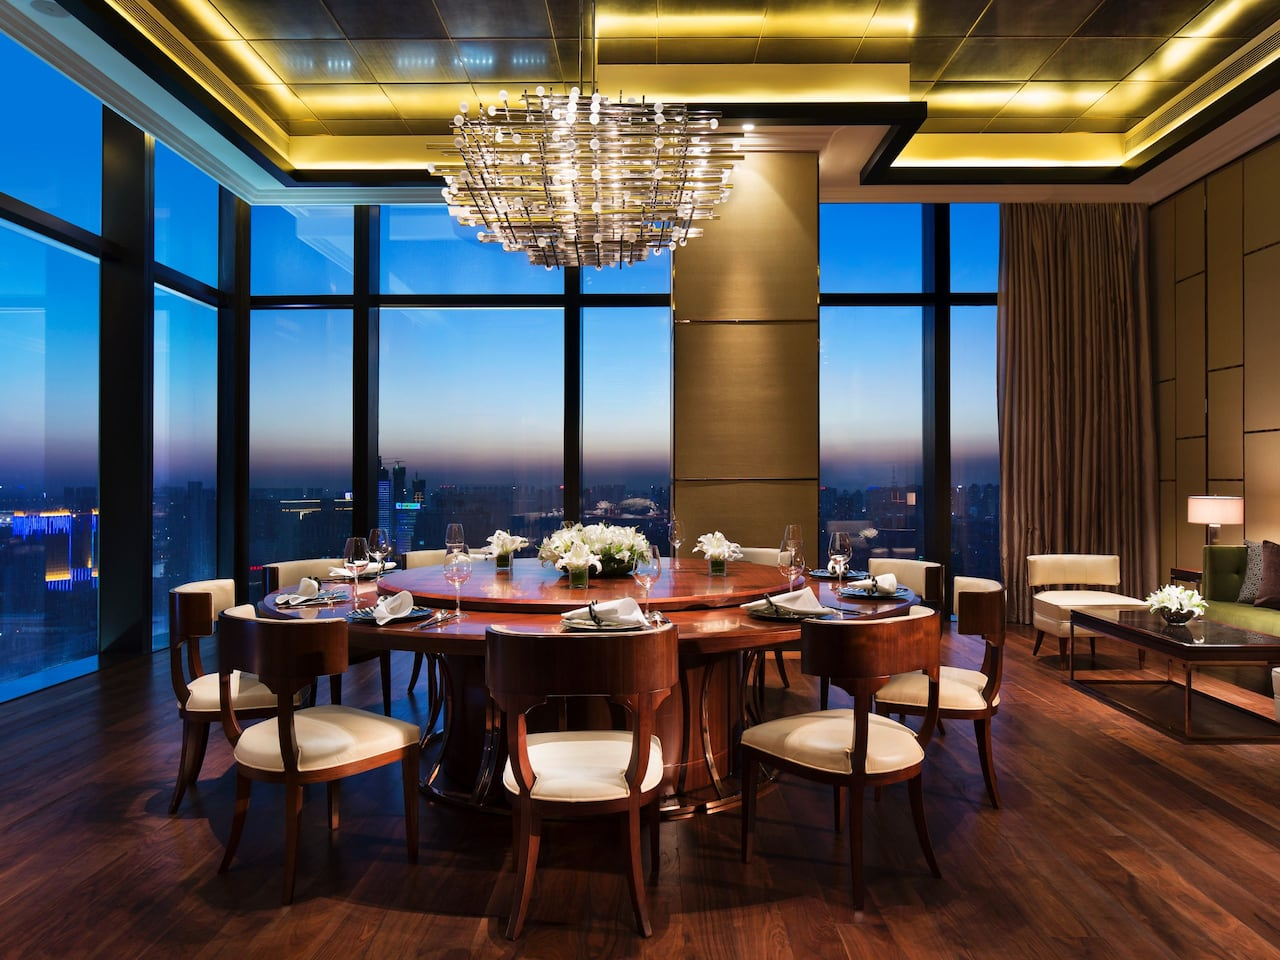 Jun hui dining room